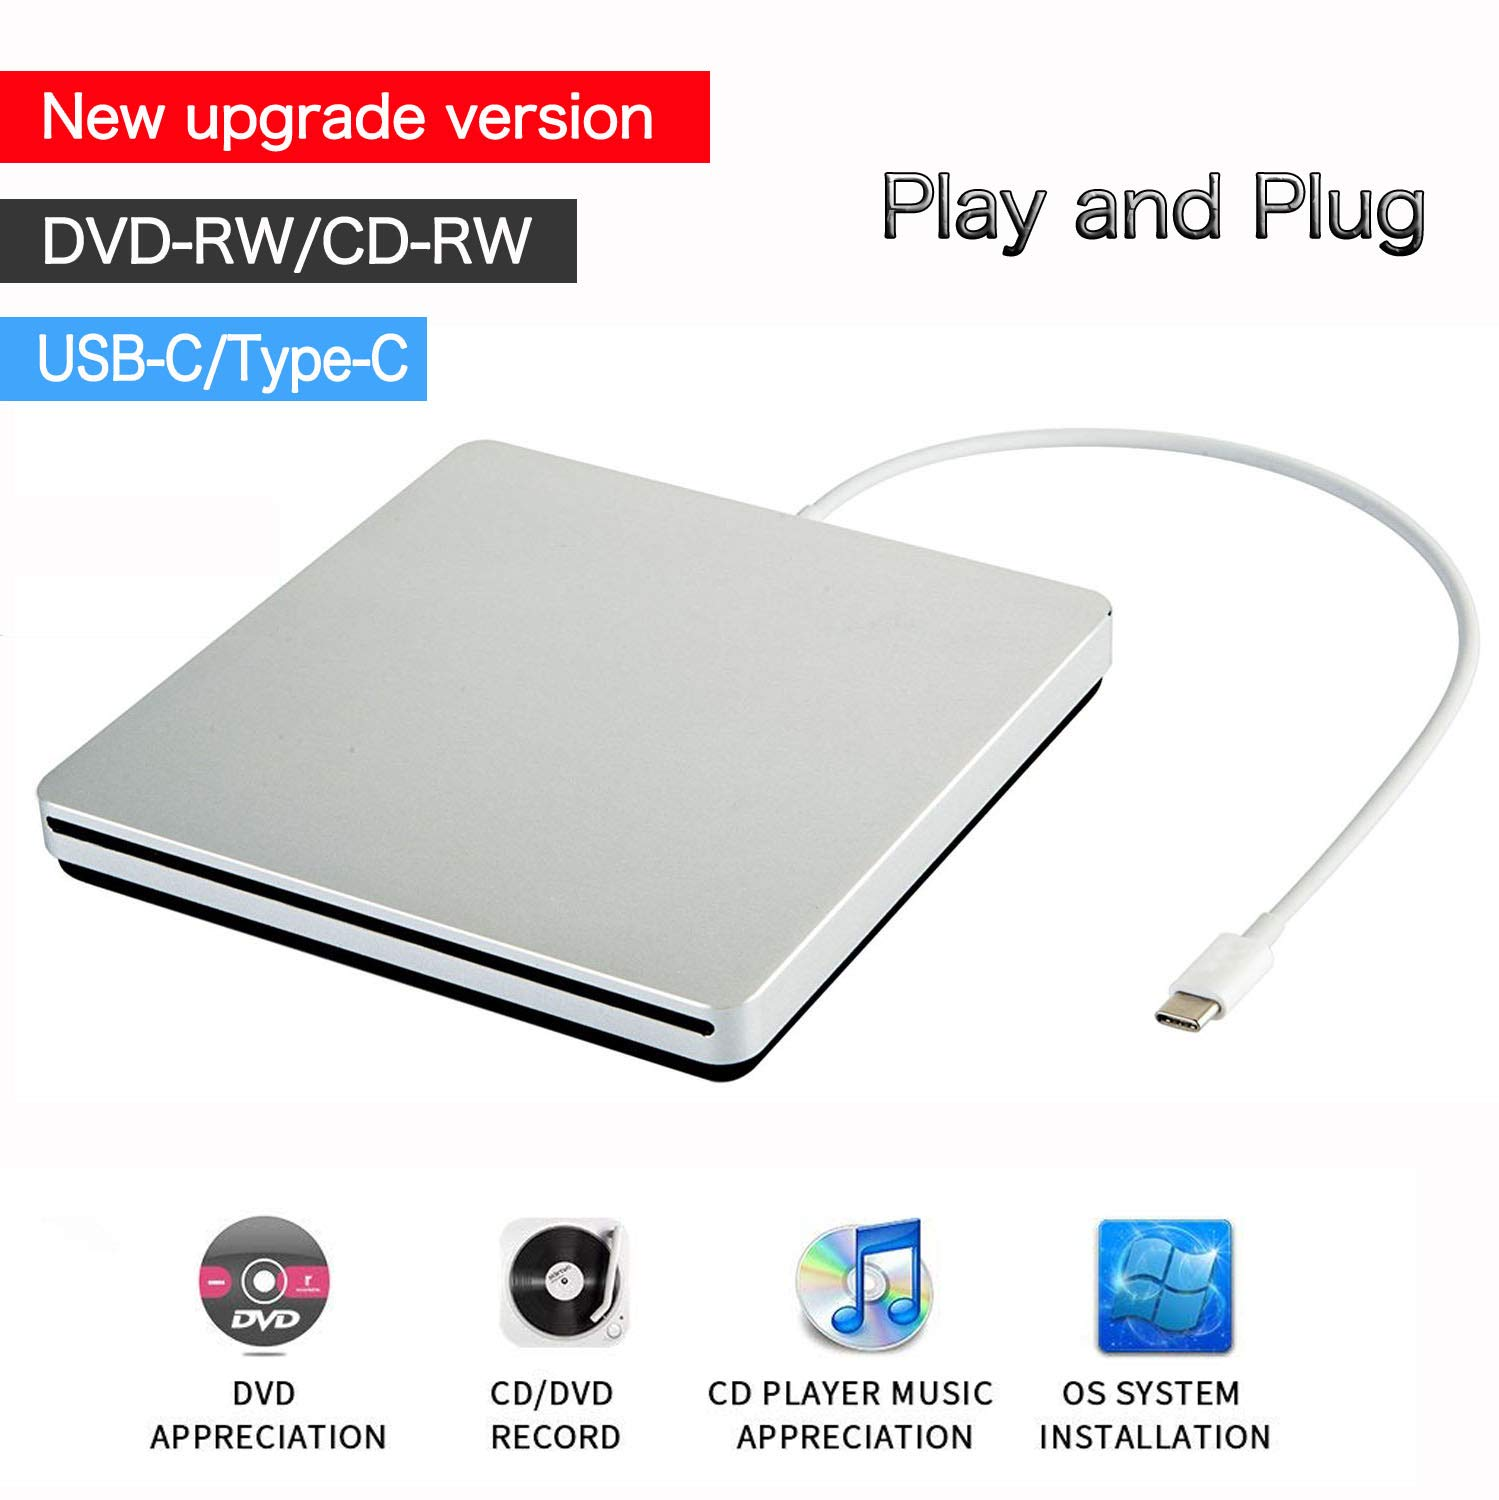 VesTcp USB-C Superdrive External DVD/CD Reader and DVD/CD Burner for Apple-MacBook Air/Pro/iMac/Mini/MacBook Pro/ASUS /ASUS/DELL Latitude with USB-C Port Plug and Play (Silver)